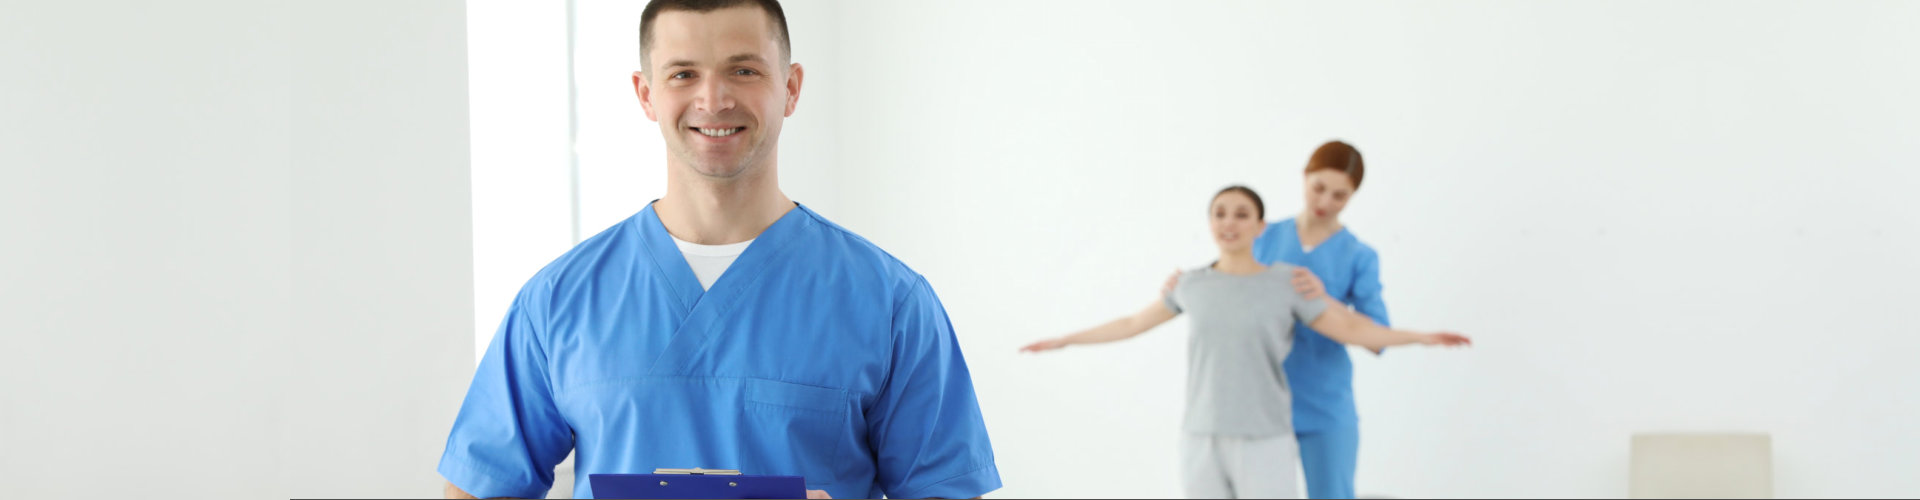 Portrait of professional physiotherapist with clipboard in rehabilitation center. Space for text